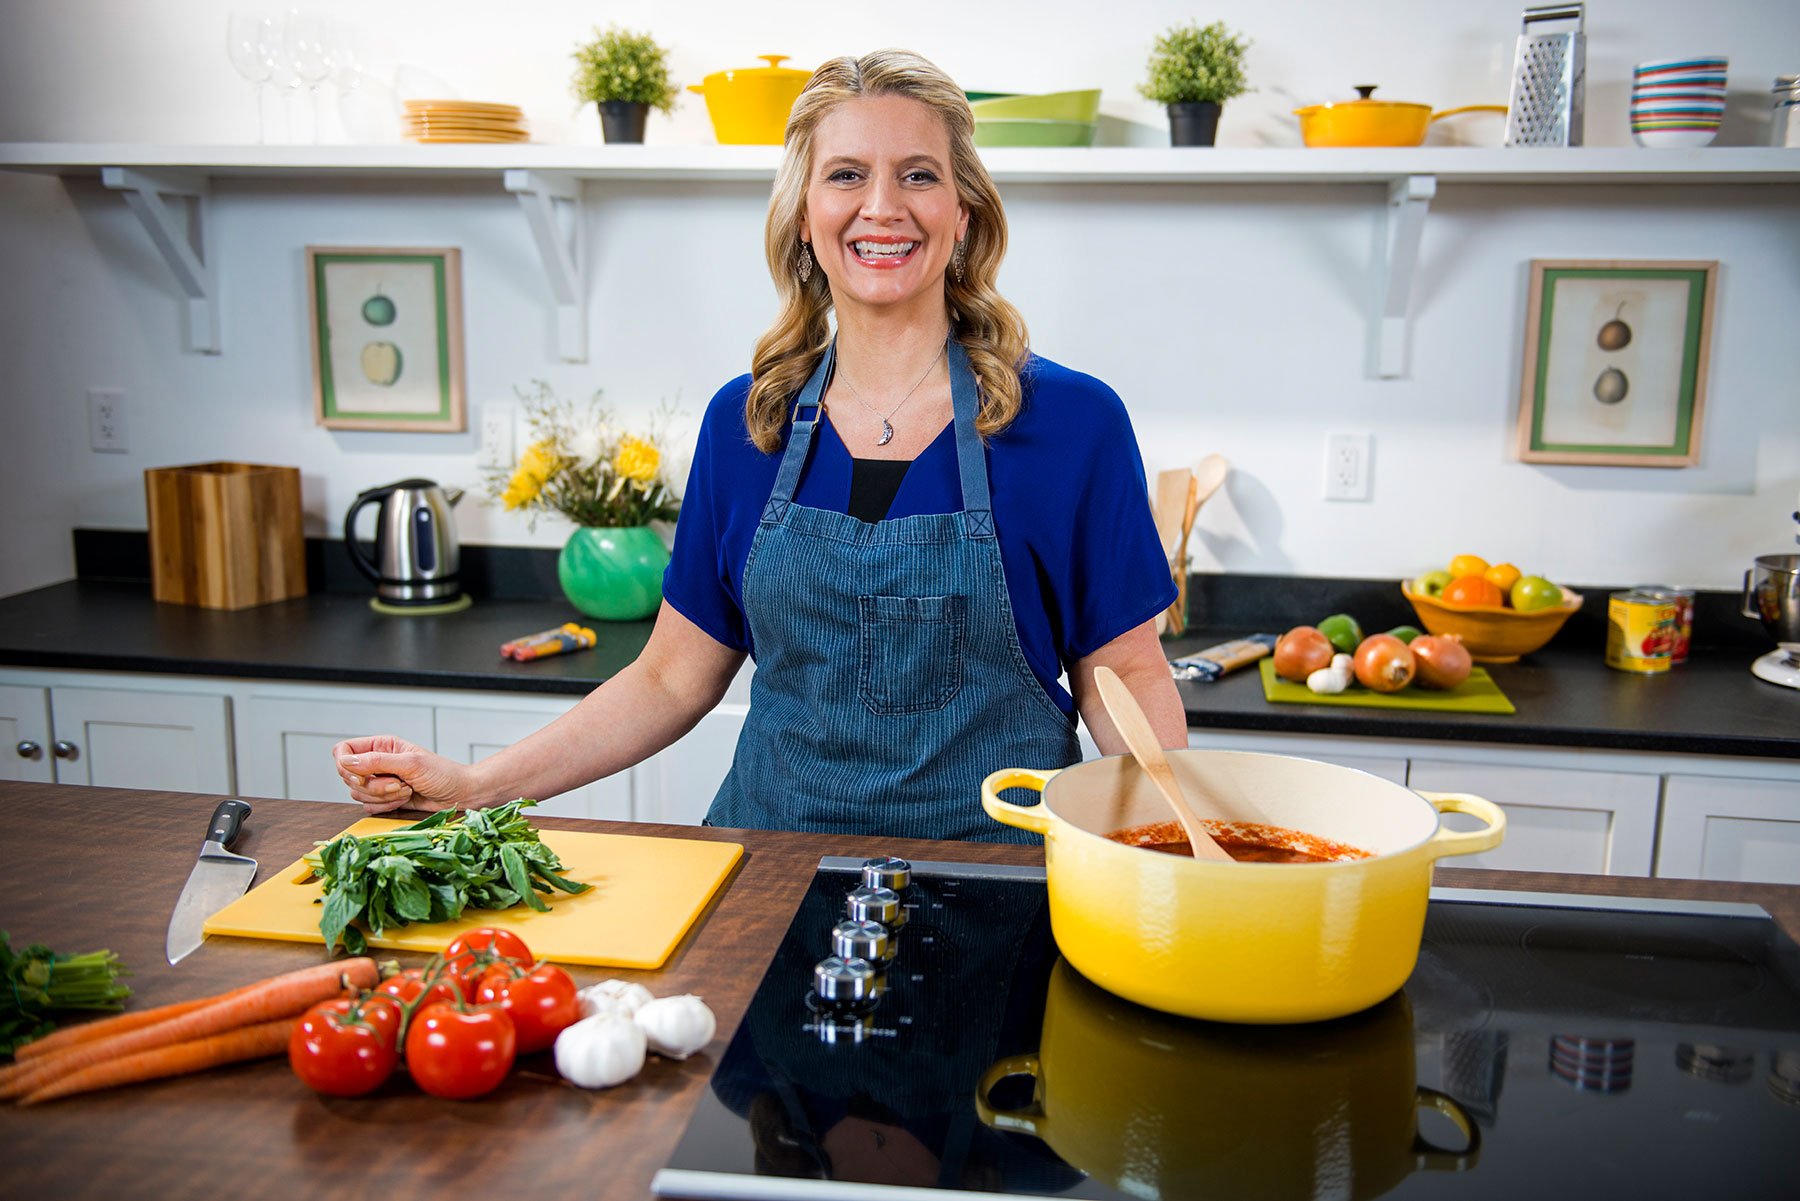 Blue apron allergies - Amanda Freitag Discusses Being A Chef With Food Allergies